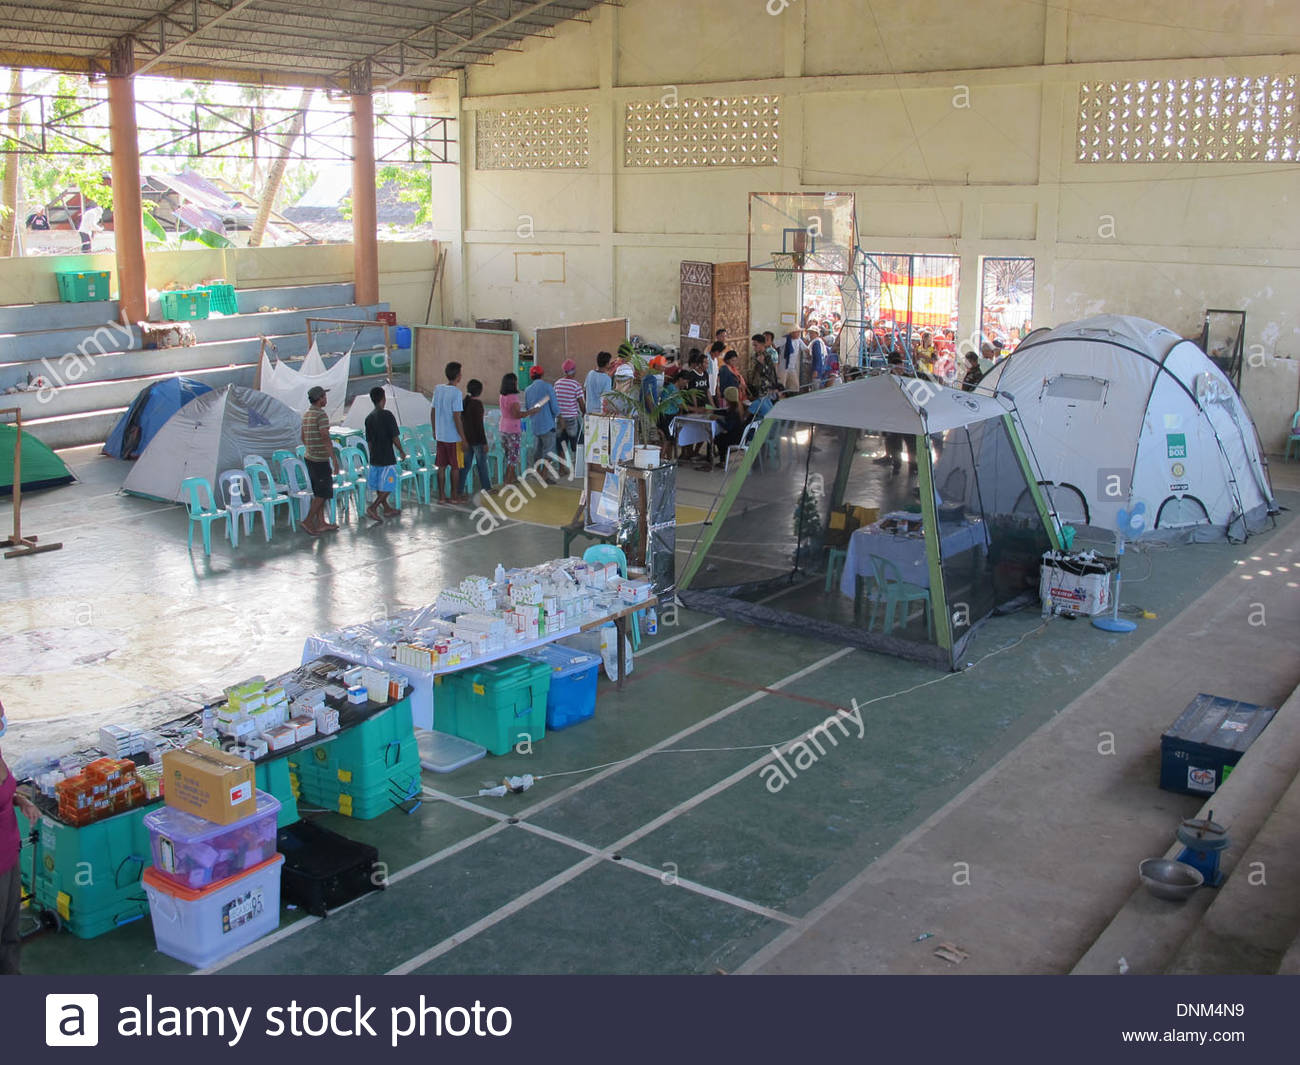 Food distribution line - queue in Bantayan.  People are waiting for bags of rice in an emergency medical facility. - Stock Image